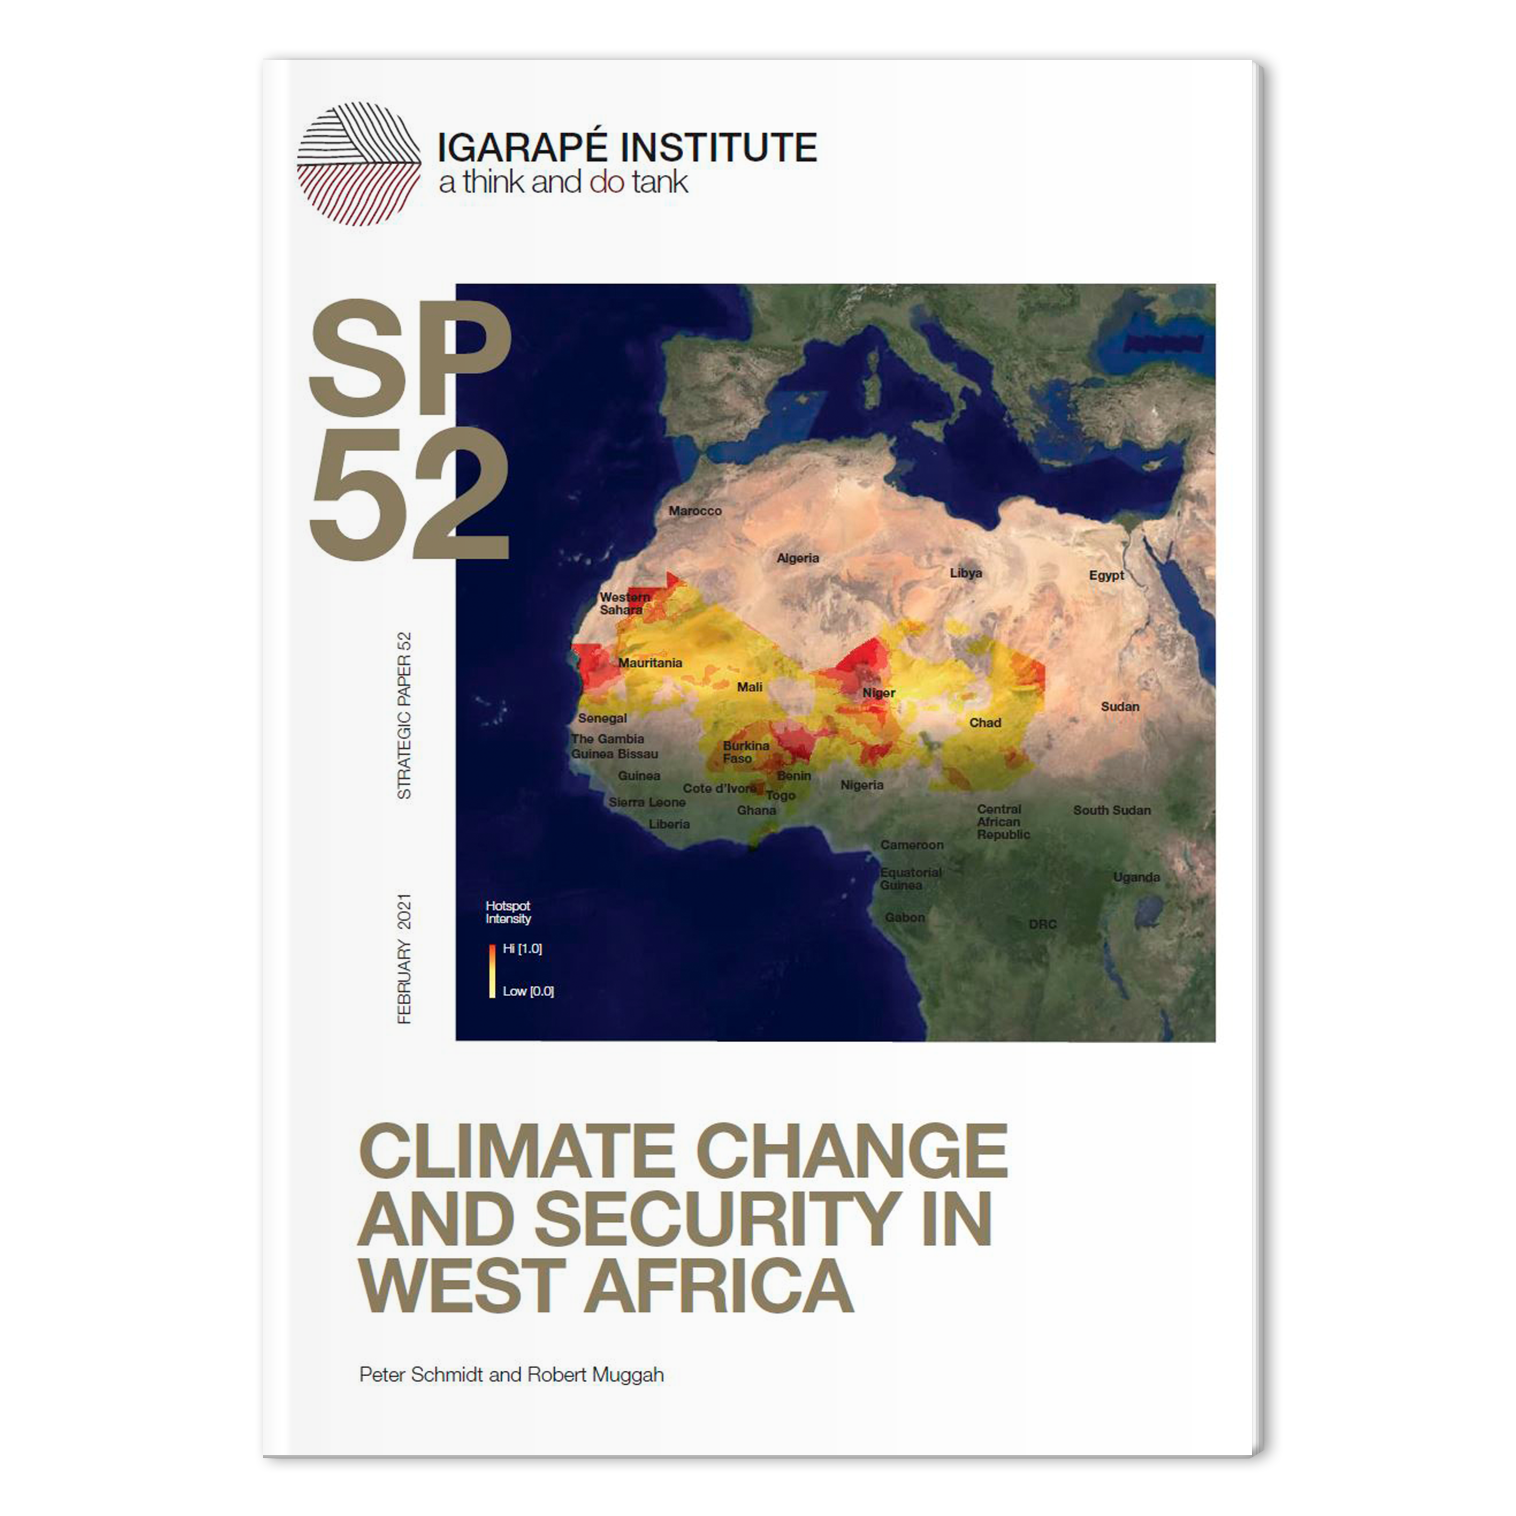 SP52 Climate Change in West Africa